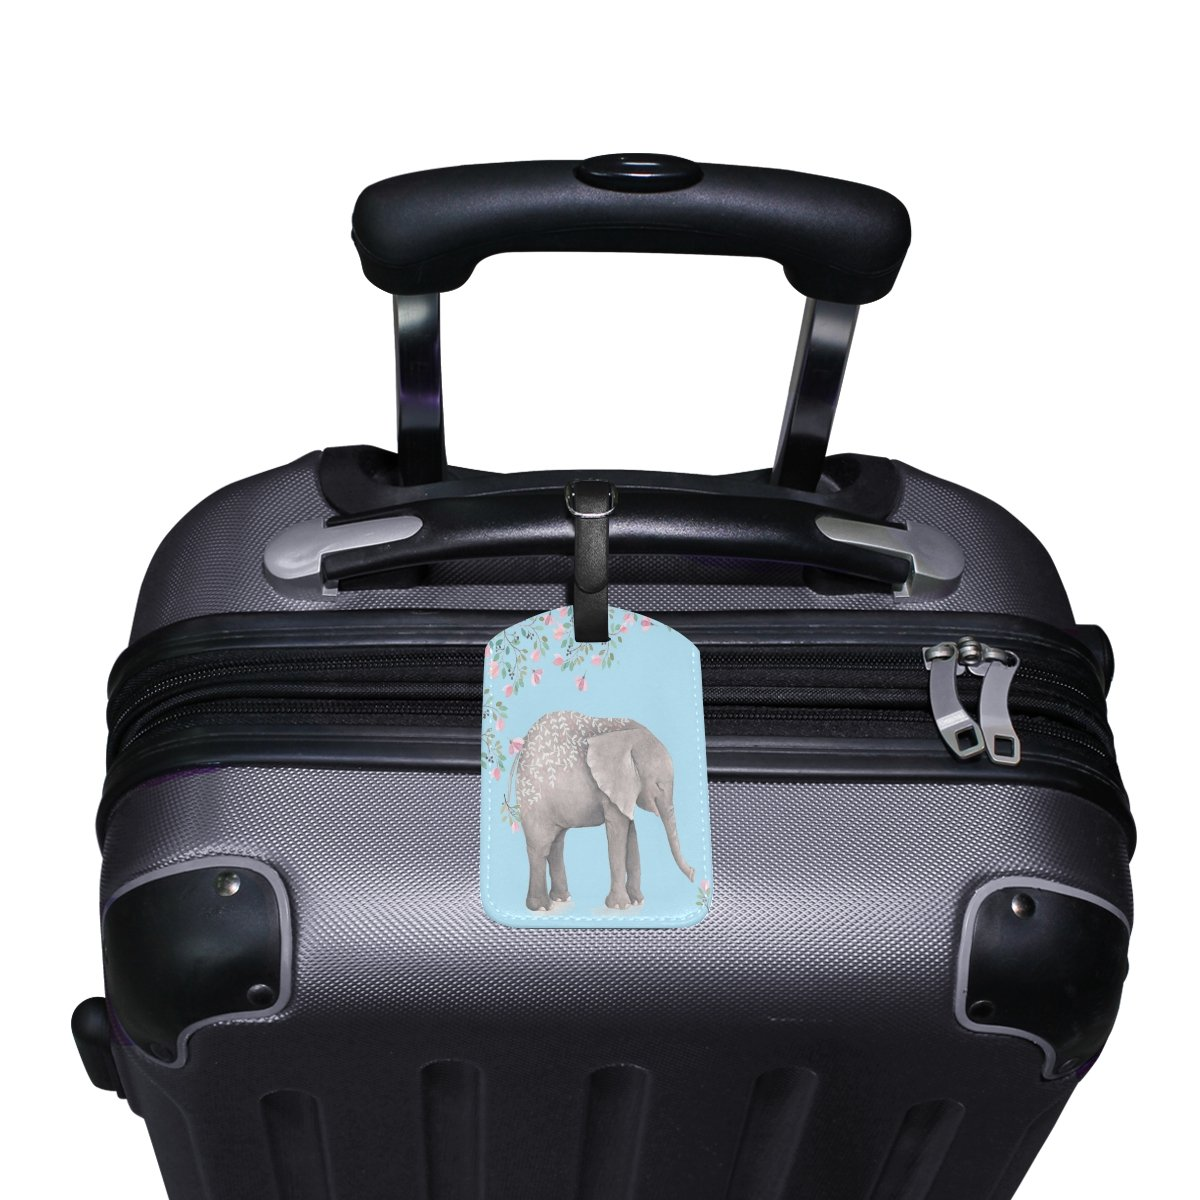 Saobao Travel Luggage Tag Elephant And Flowers PU Leather Baggage Suitcase Travel ID Bag Tag 1Pcs